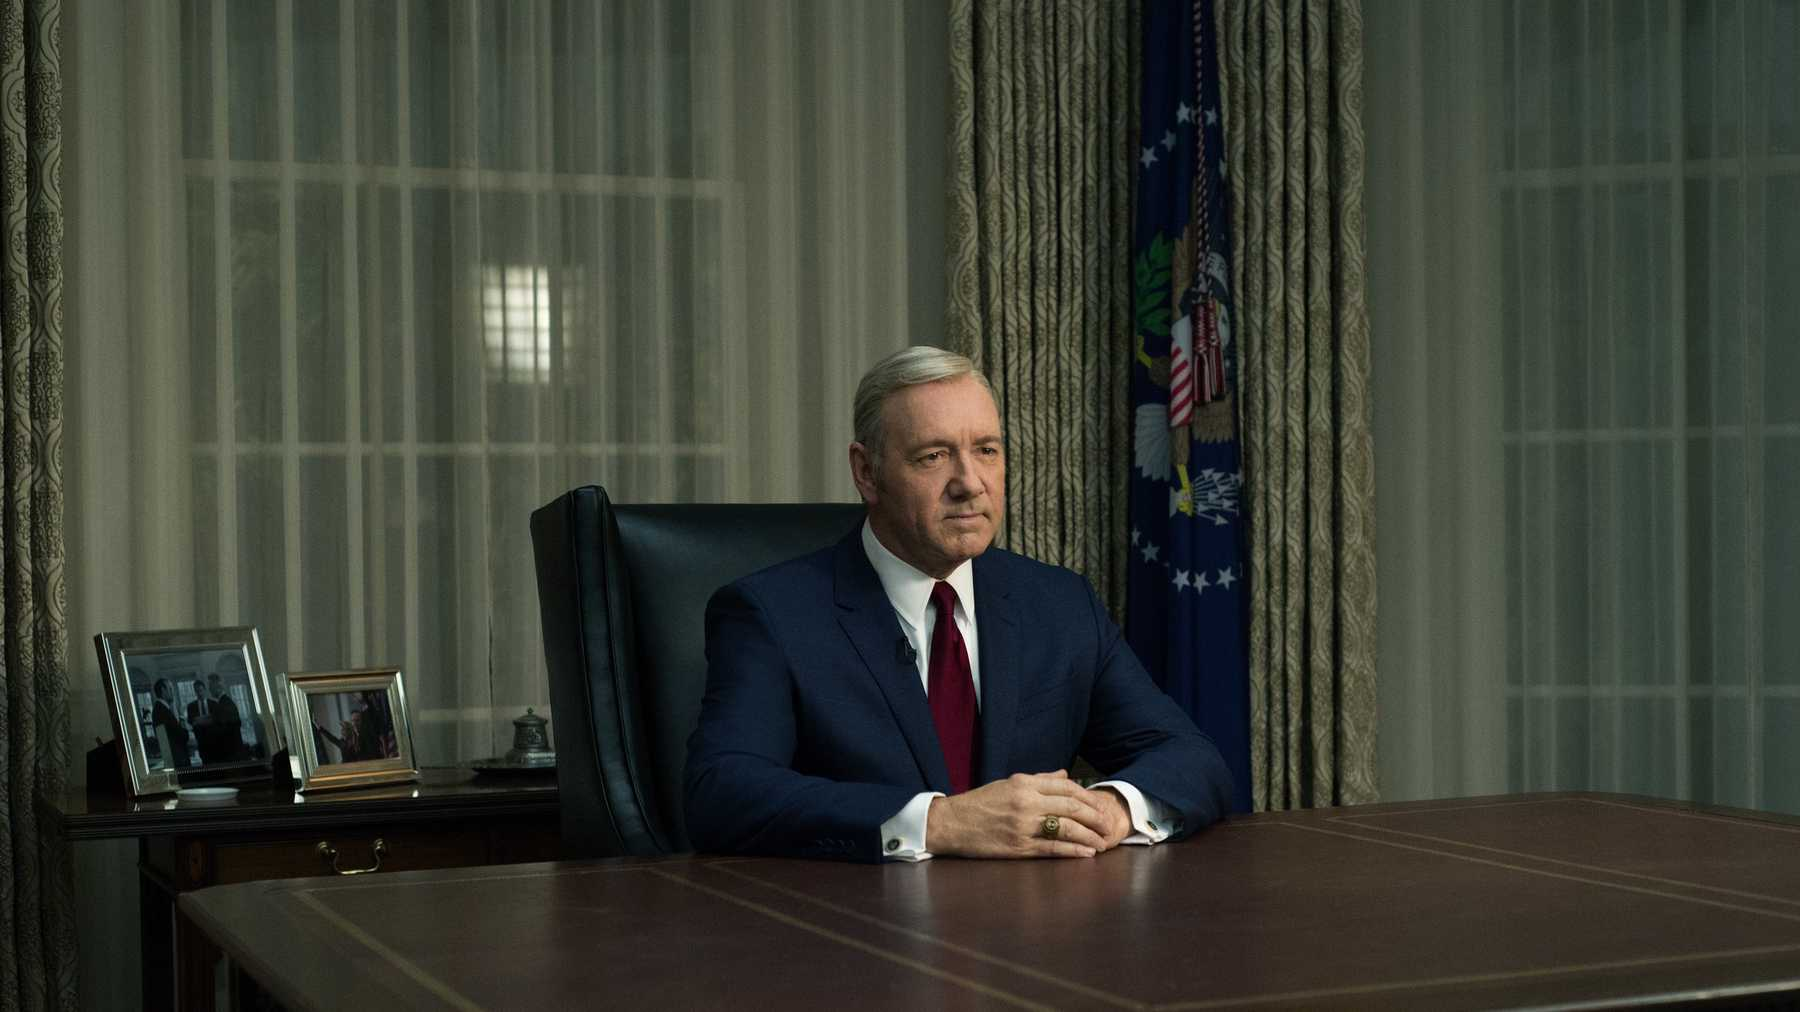 House Of Cards: Season 3 Review | TV Show - Empire